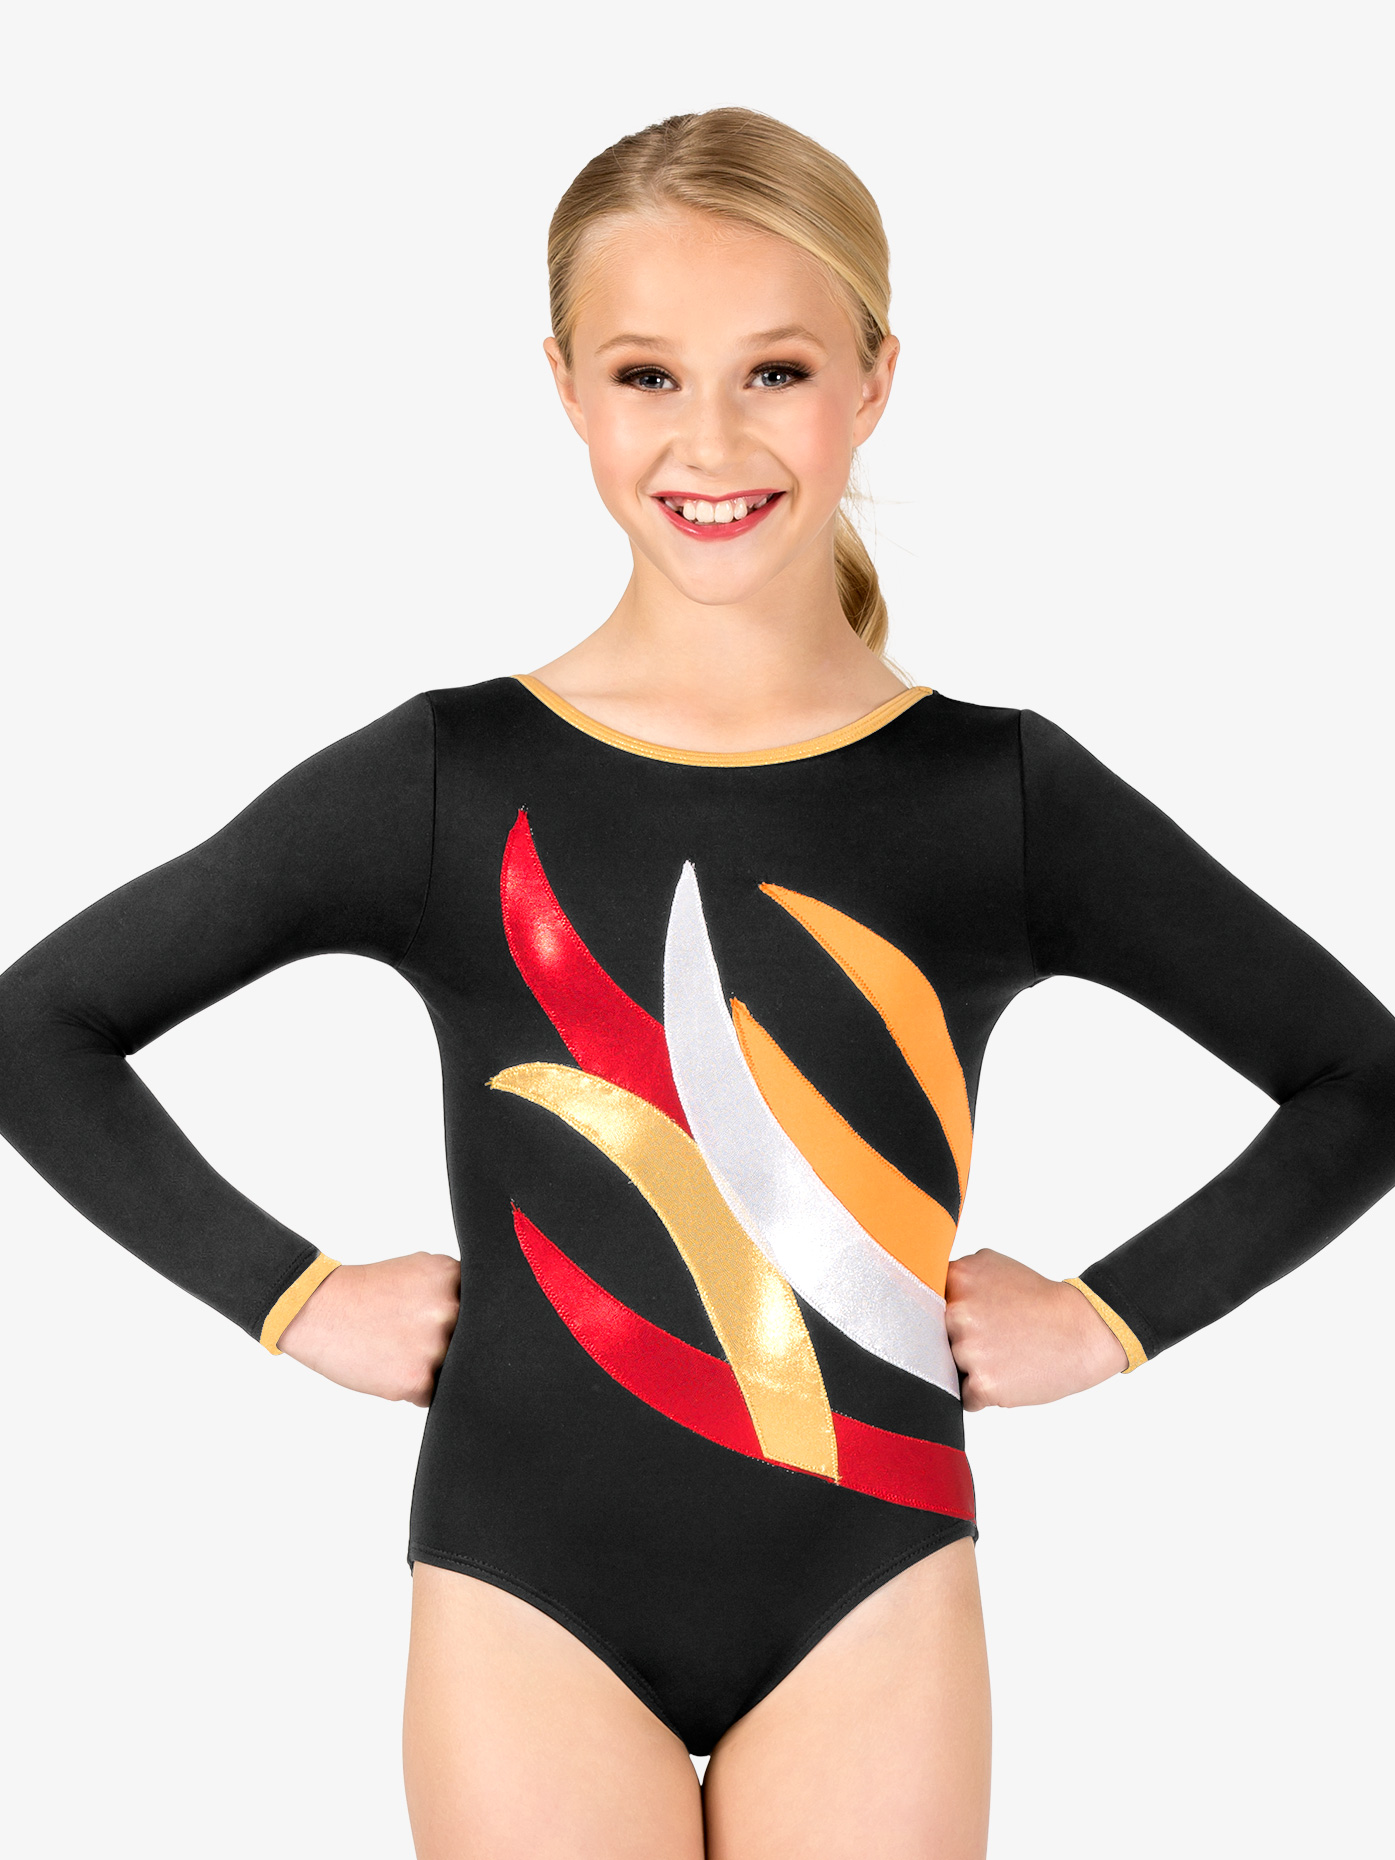 Perfect Balance Womens Gymnastics Contrast Spliced Long Sleeve Leotard G675